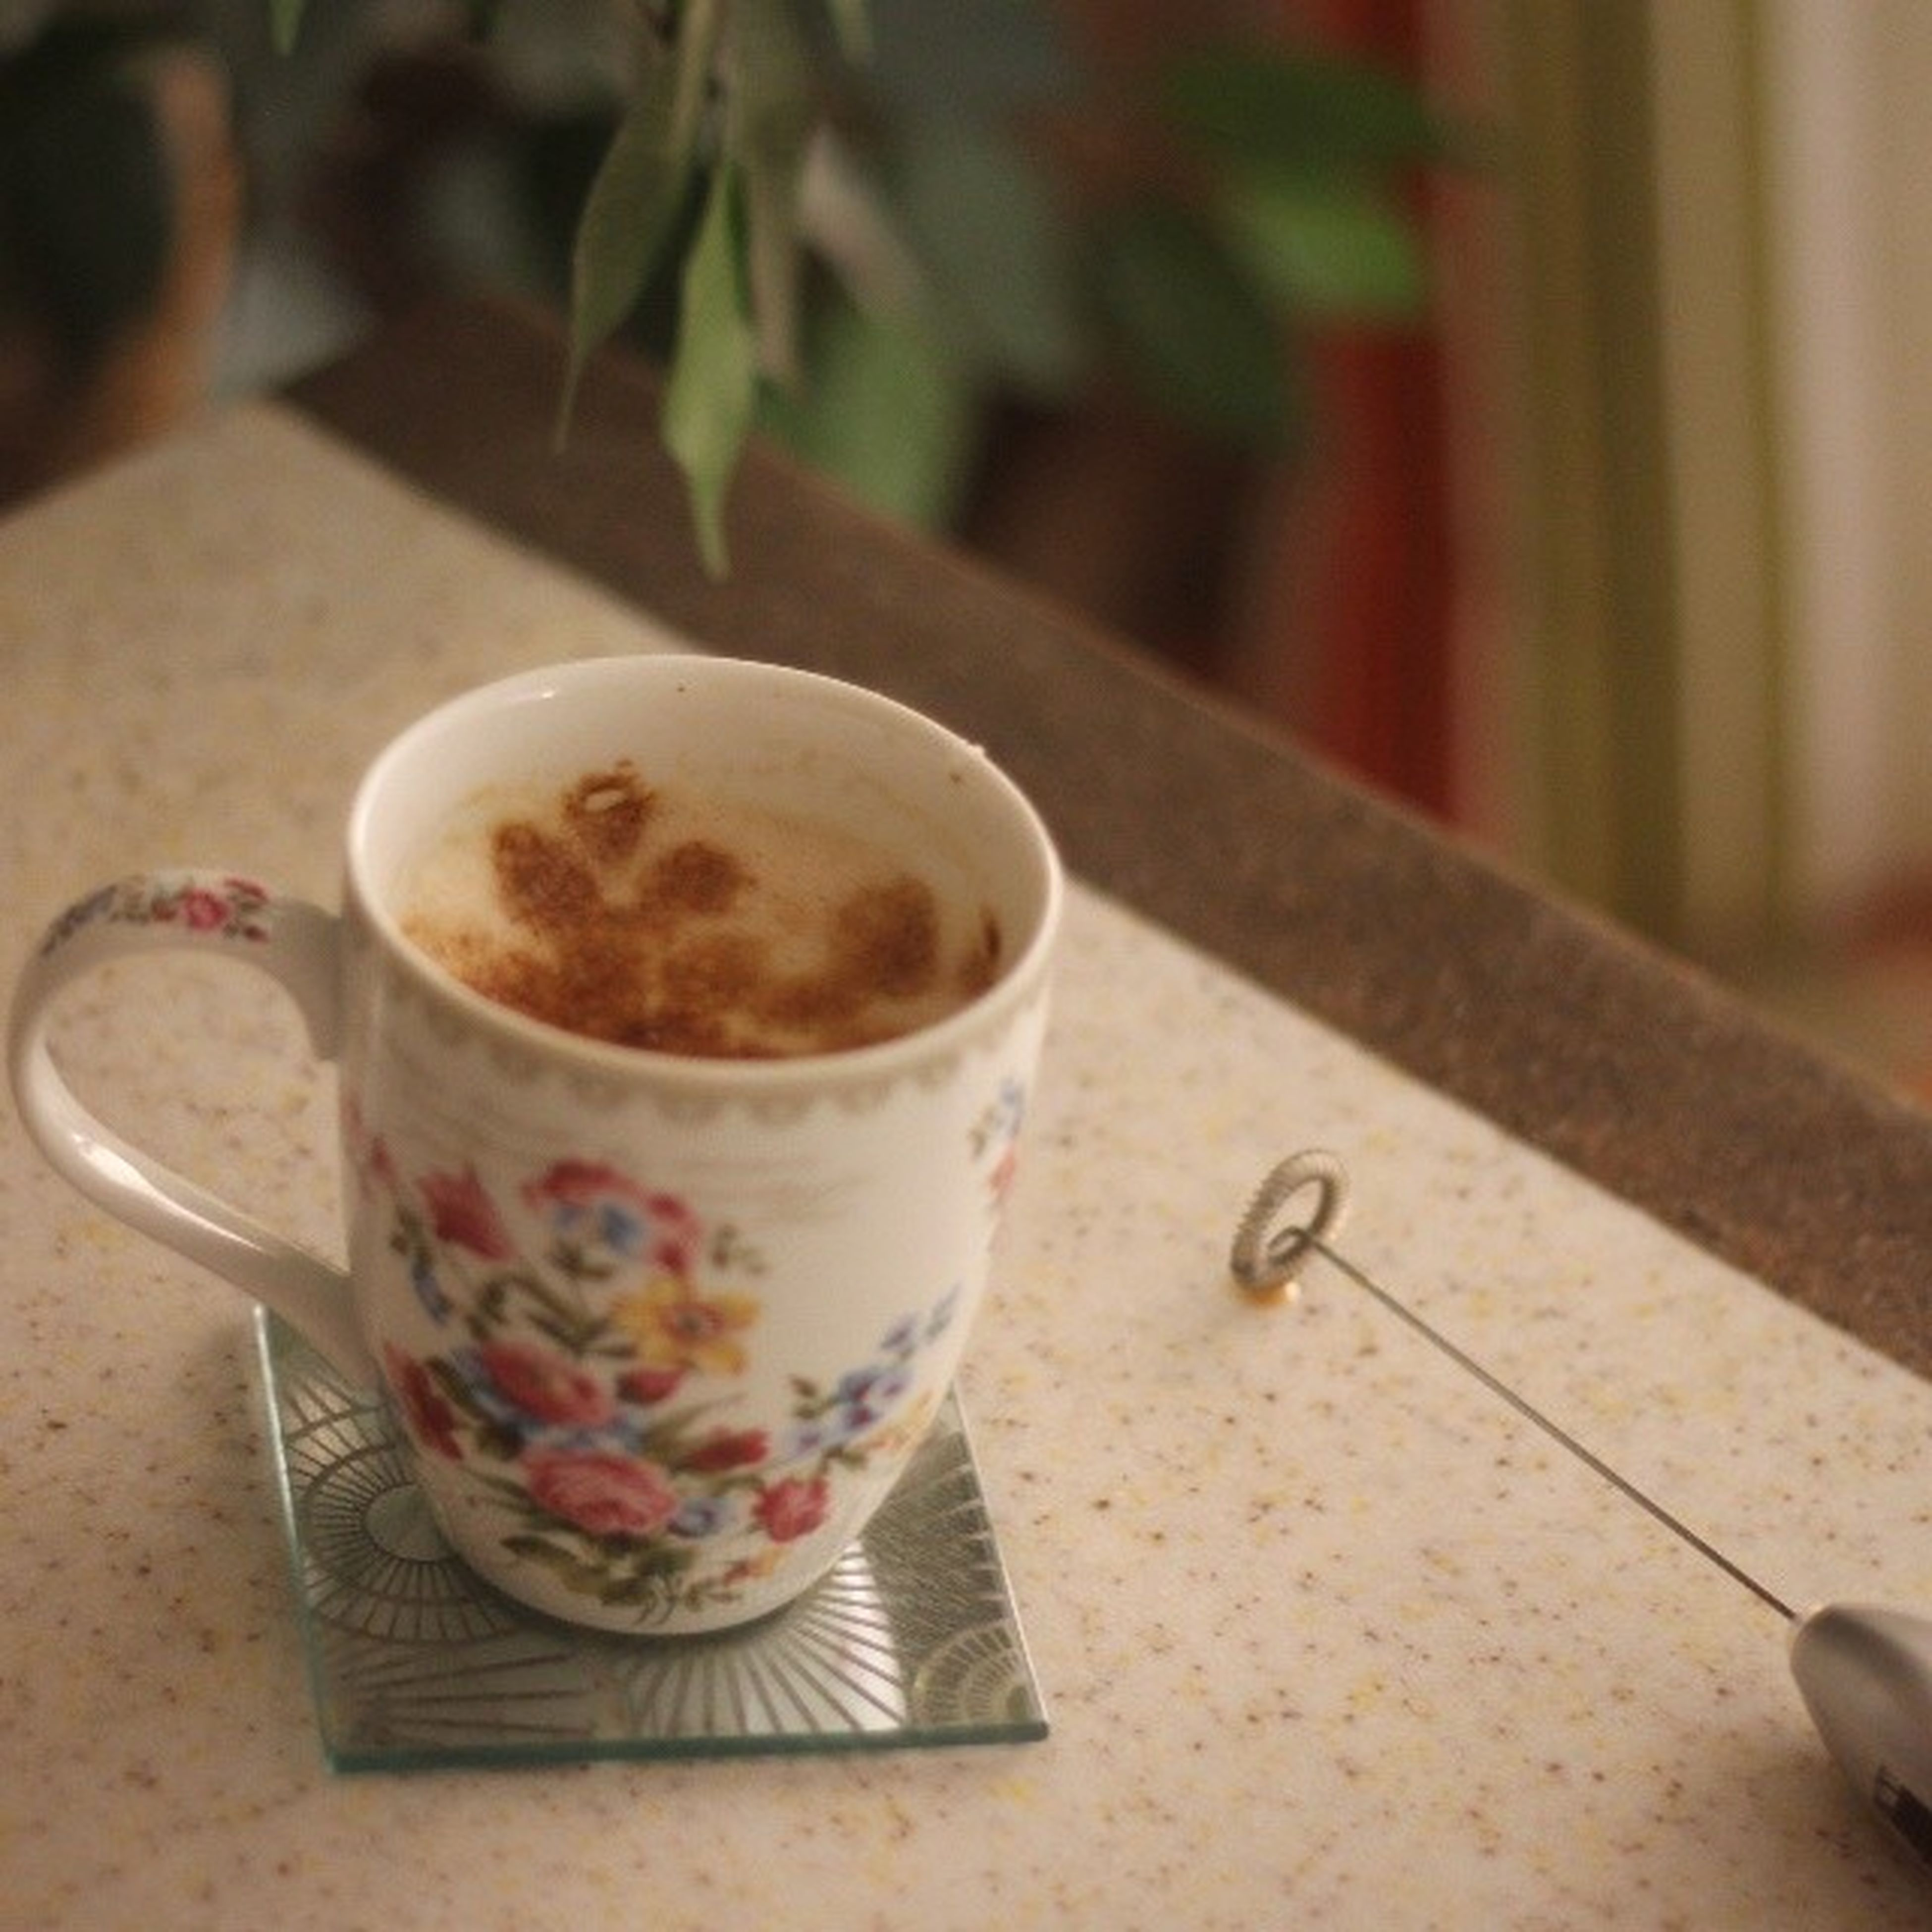 food and drink, coffee cup, drink, coffee - drink, table, refreshment, indoors, freshness, saucer, still life, close-up, frothy drink, coffee, focus on foreground, spoon, cup, cappuccino, selective focus, beverage, froth art